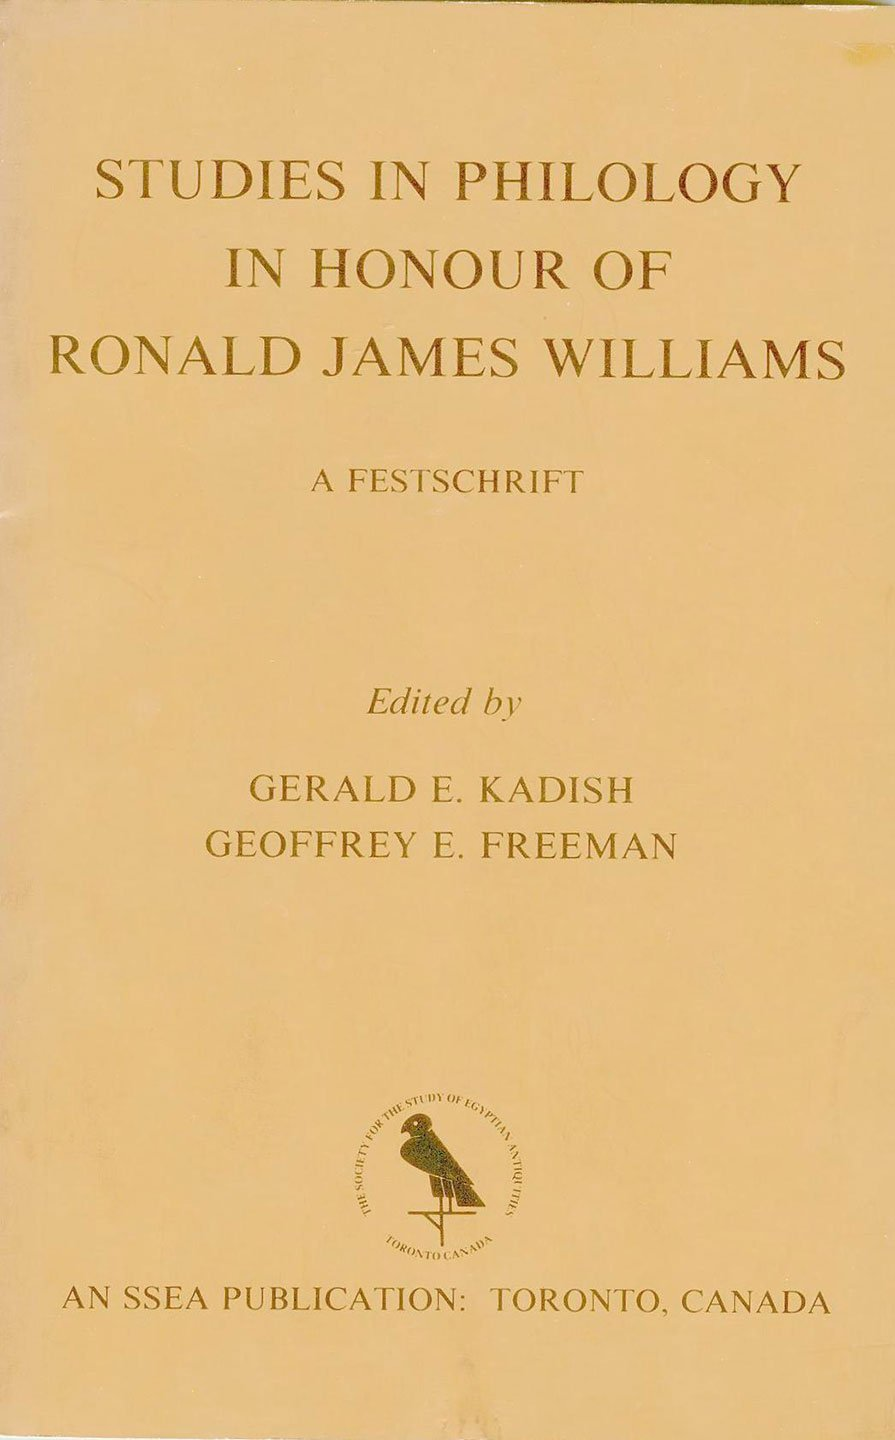 Studies in Philology in Honour of Ronald James Williams: A Festschrift